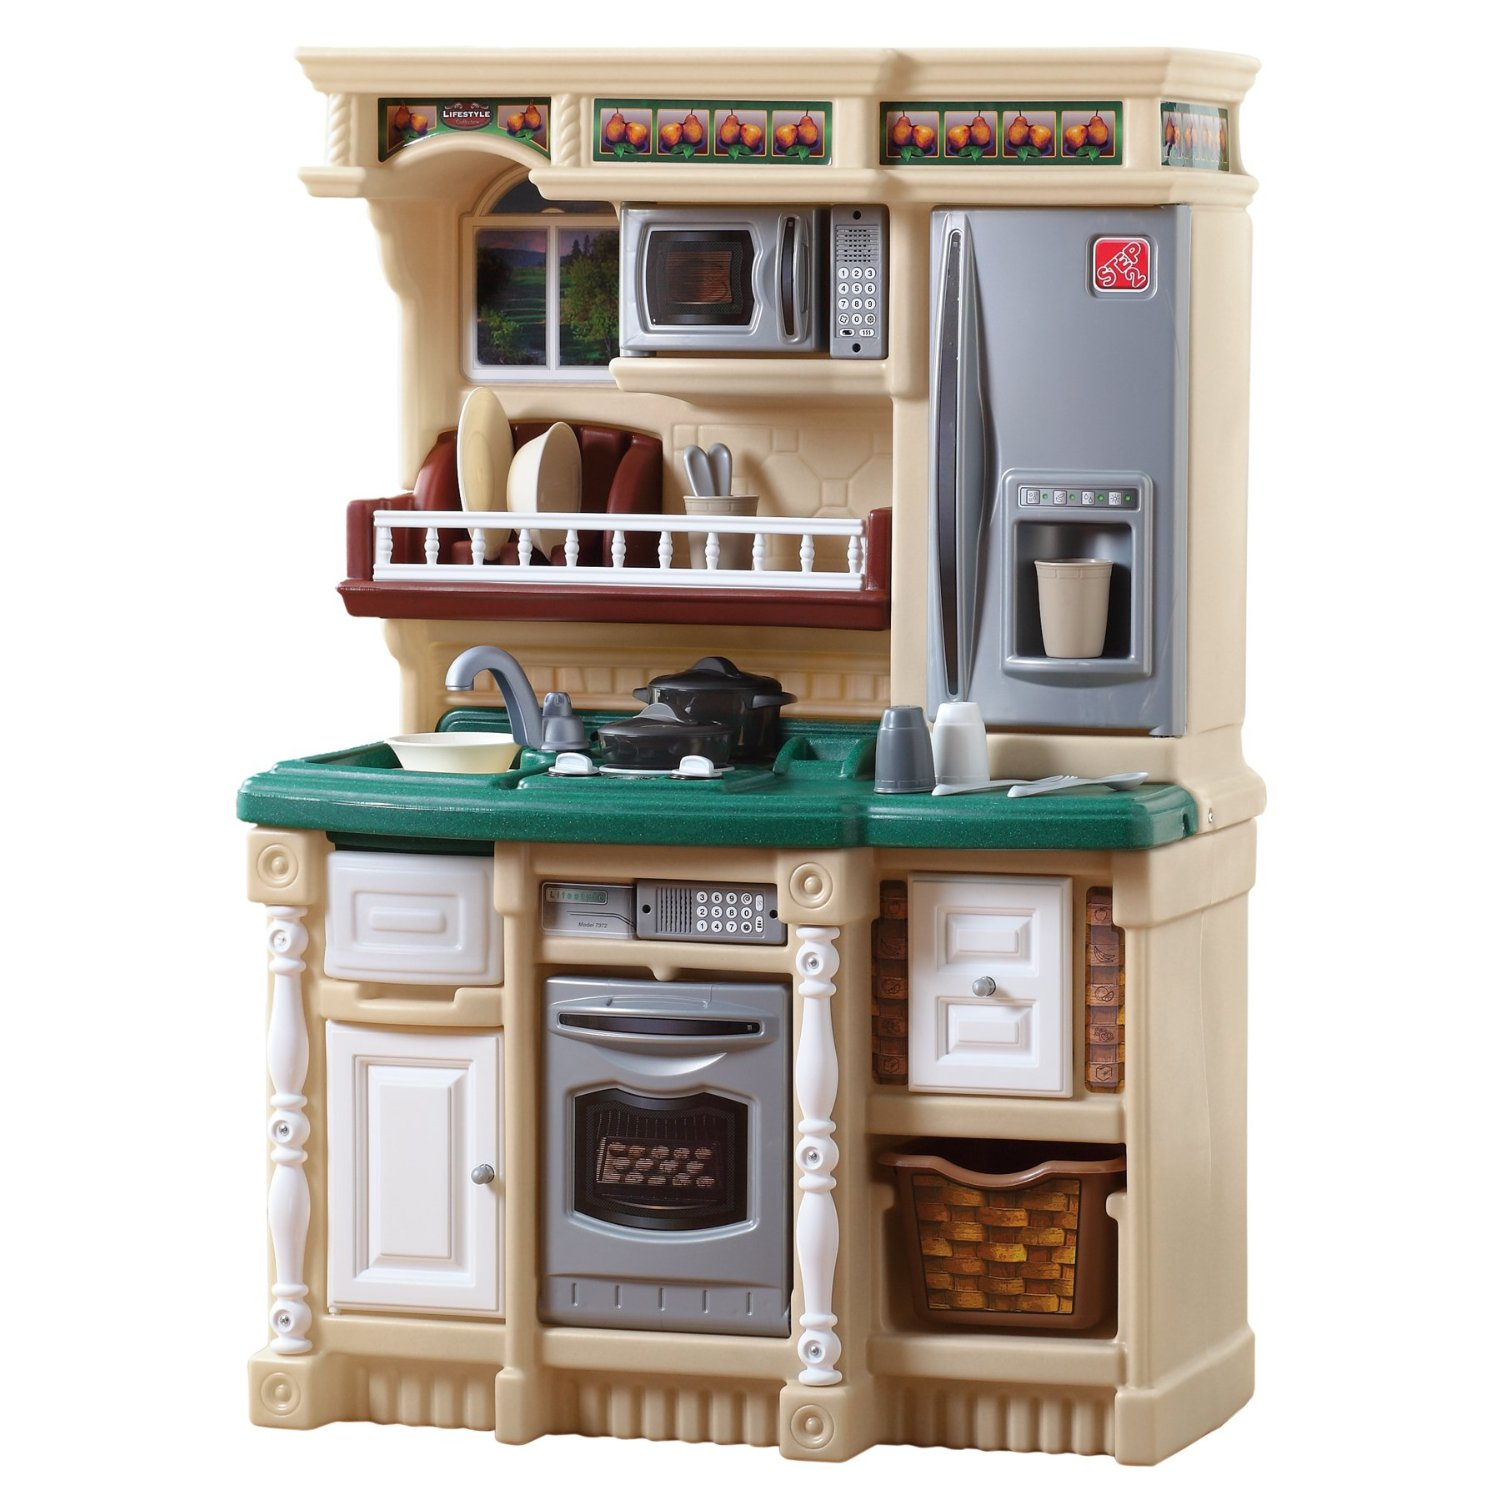 Children Kitchen Set: 17 Christmas Presents Every Irish Child Received From